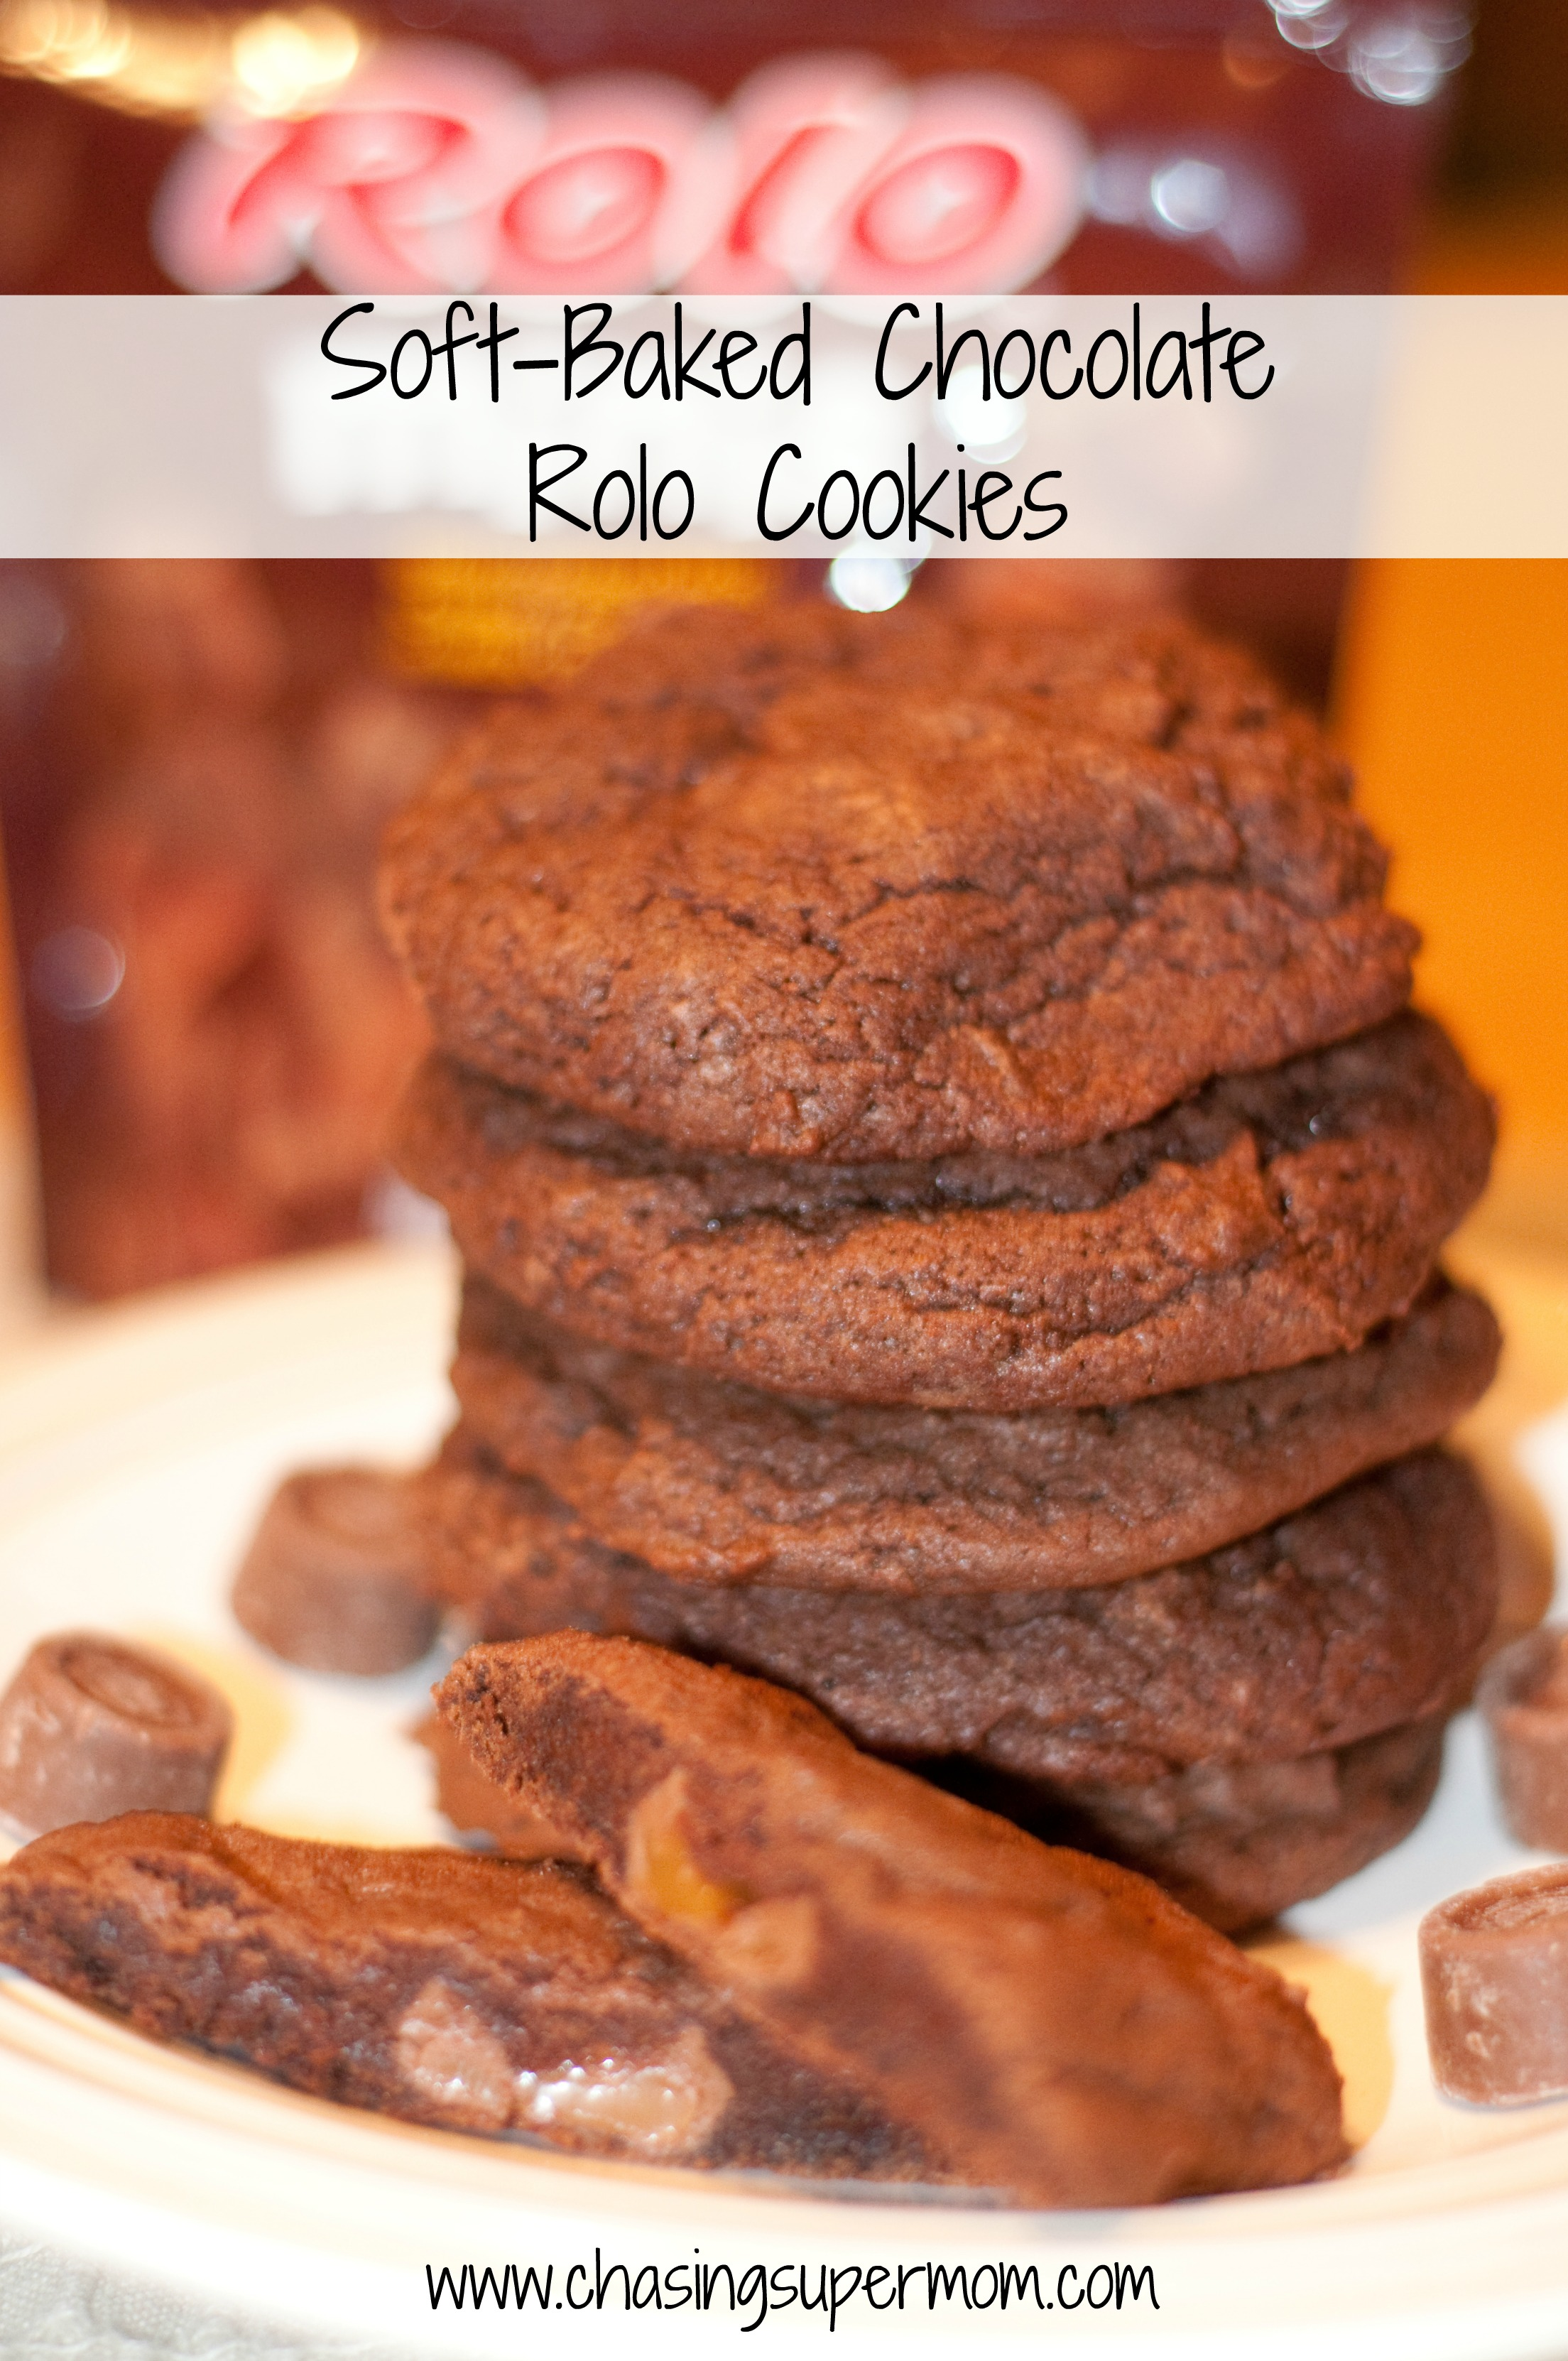 Soft-Baked Chocolate Rolo Cookies